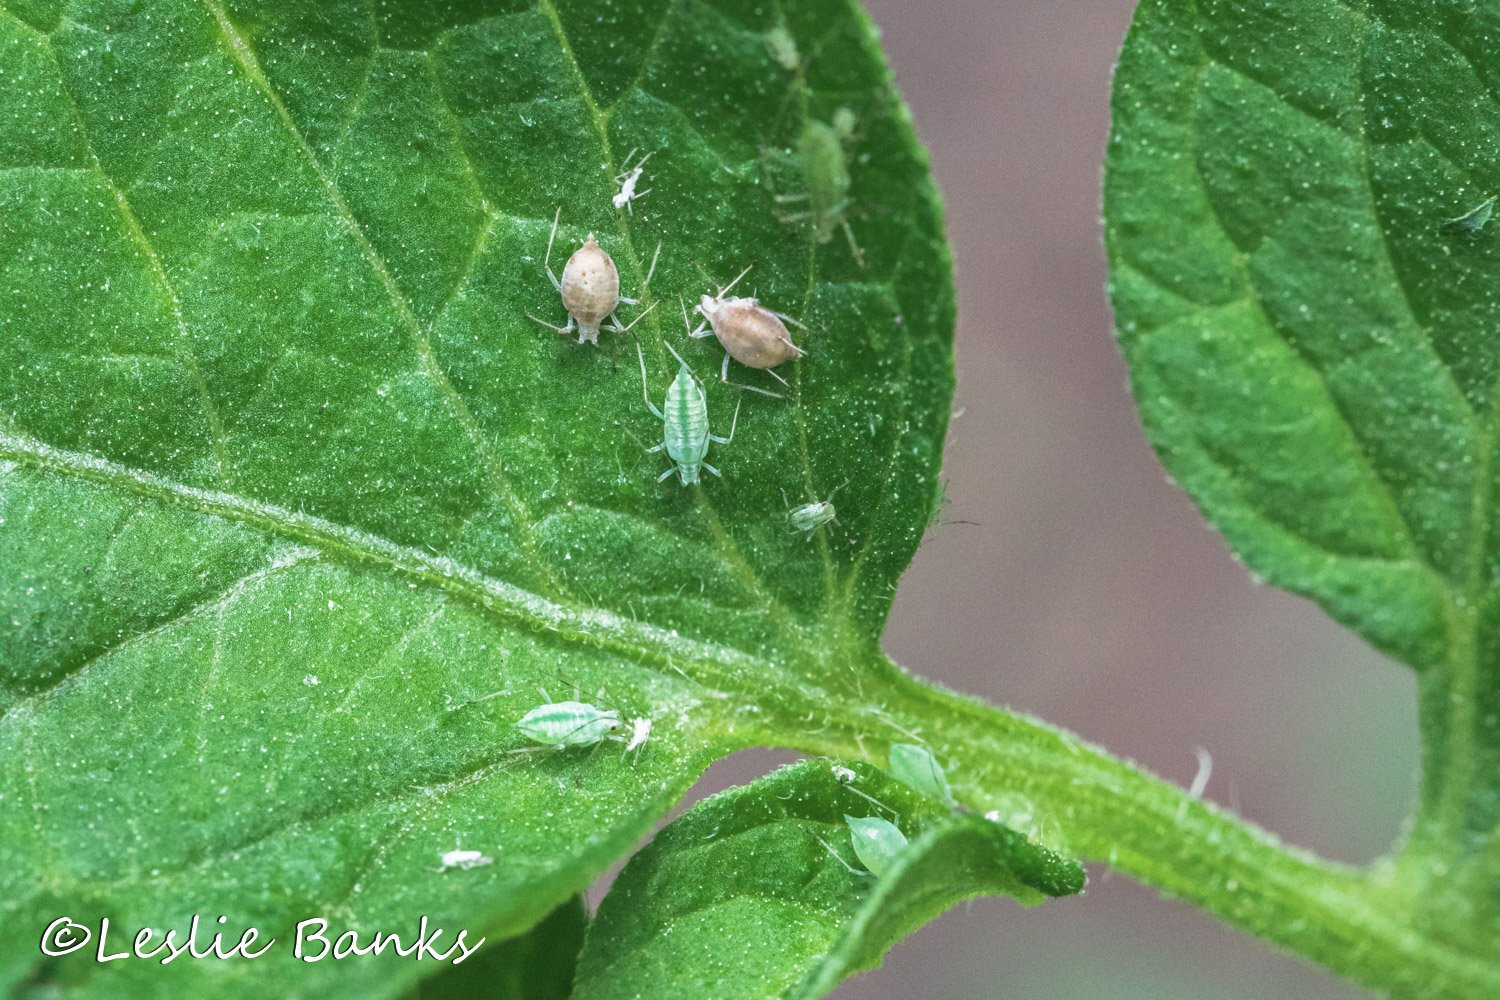 Aphids Attacking Tomato Plant